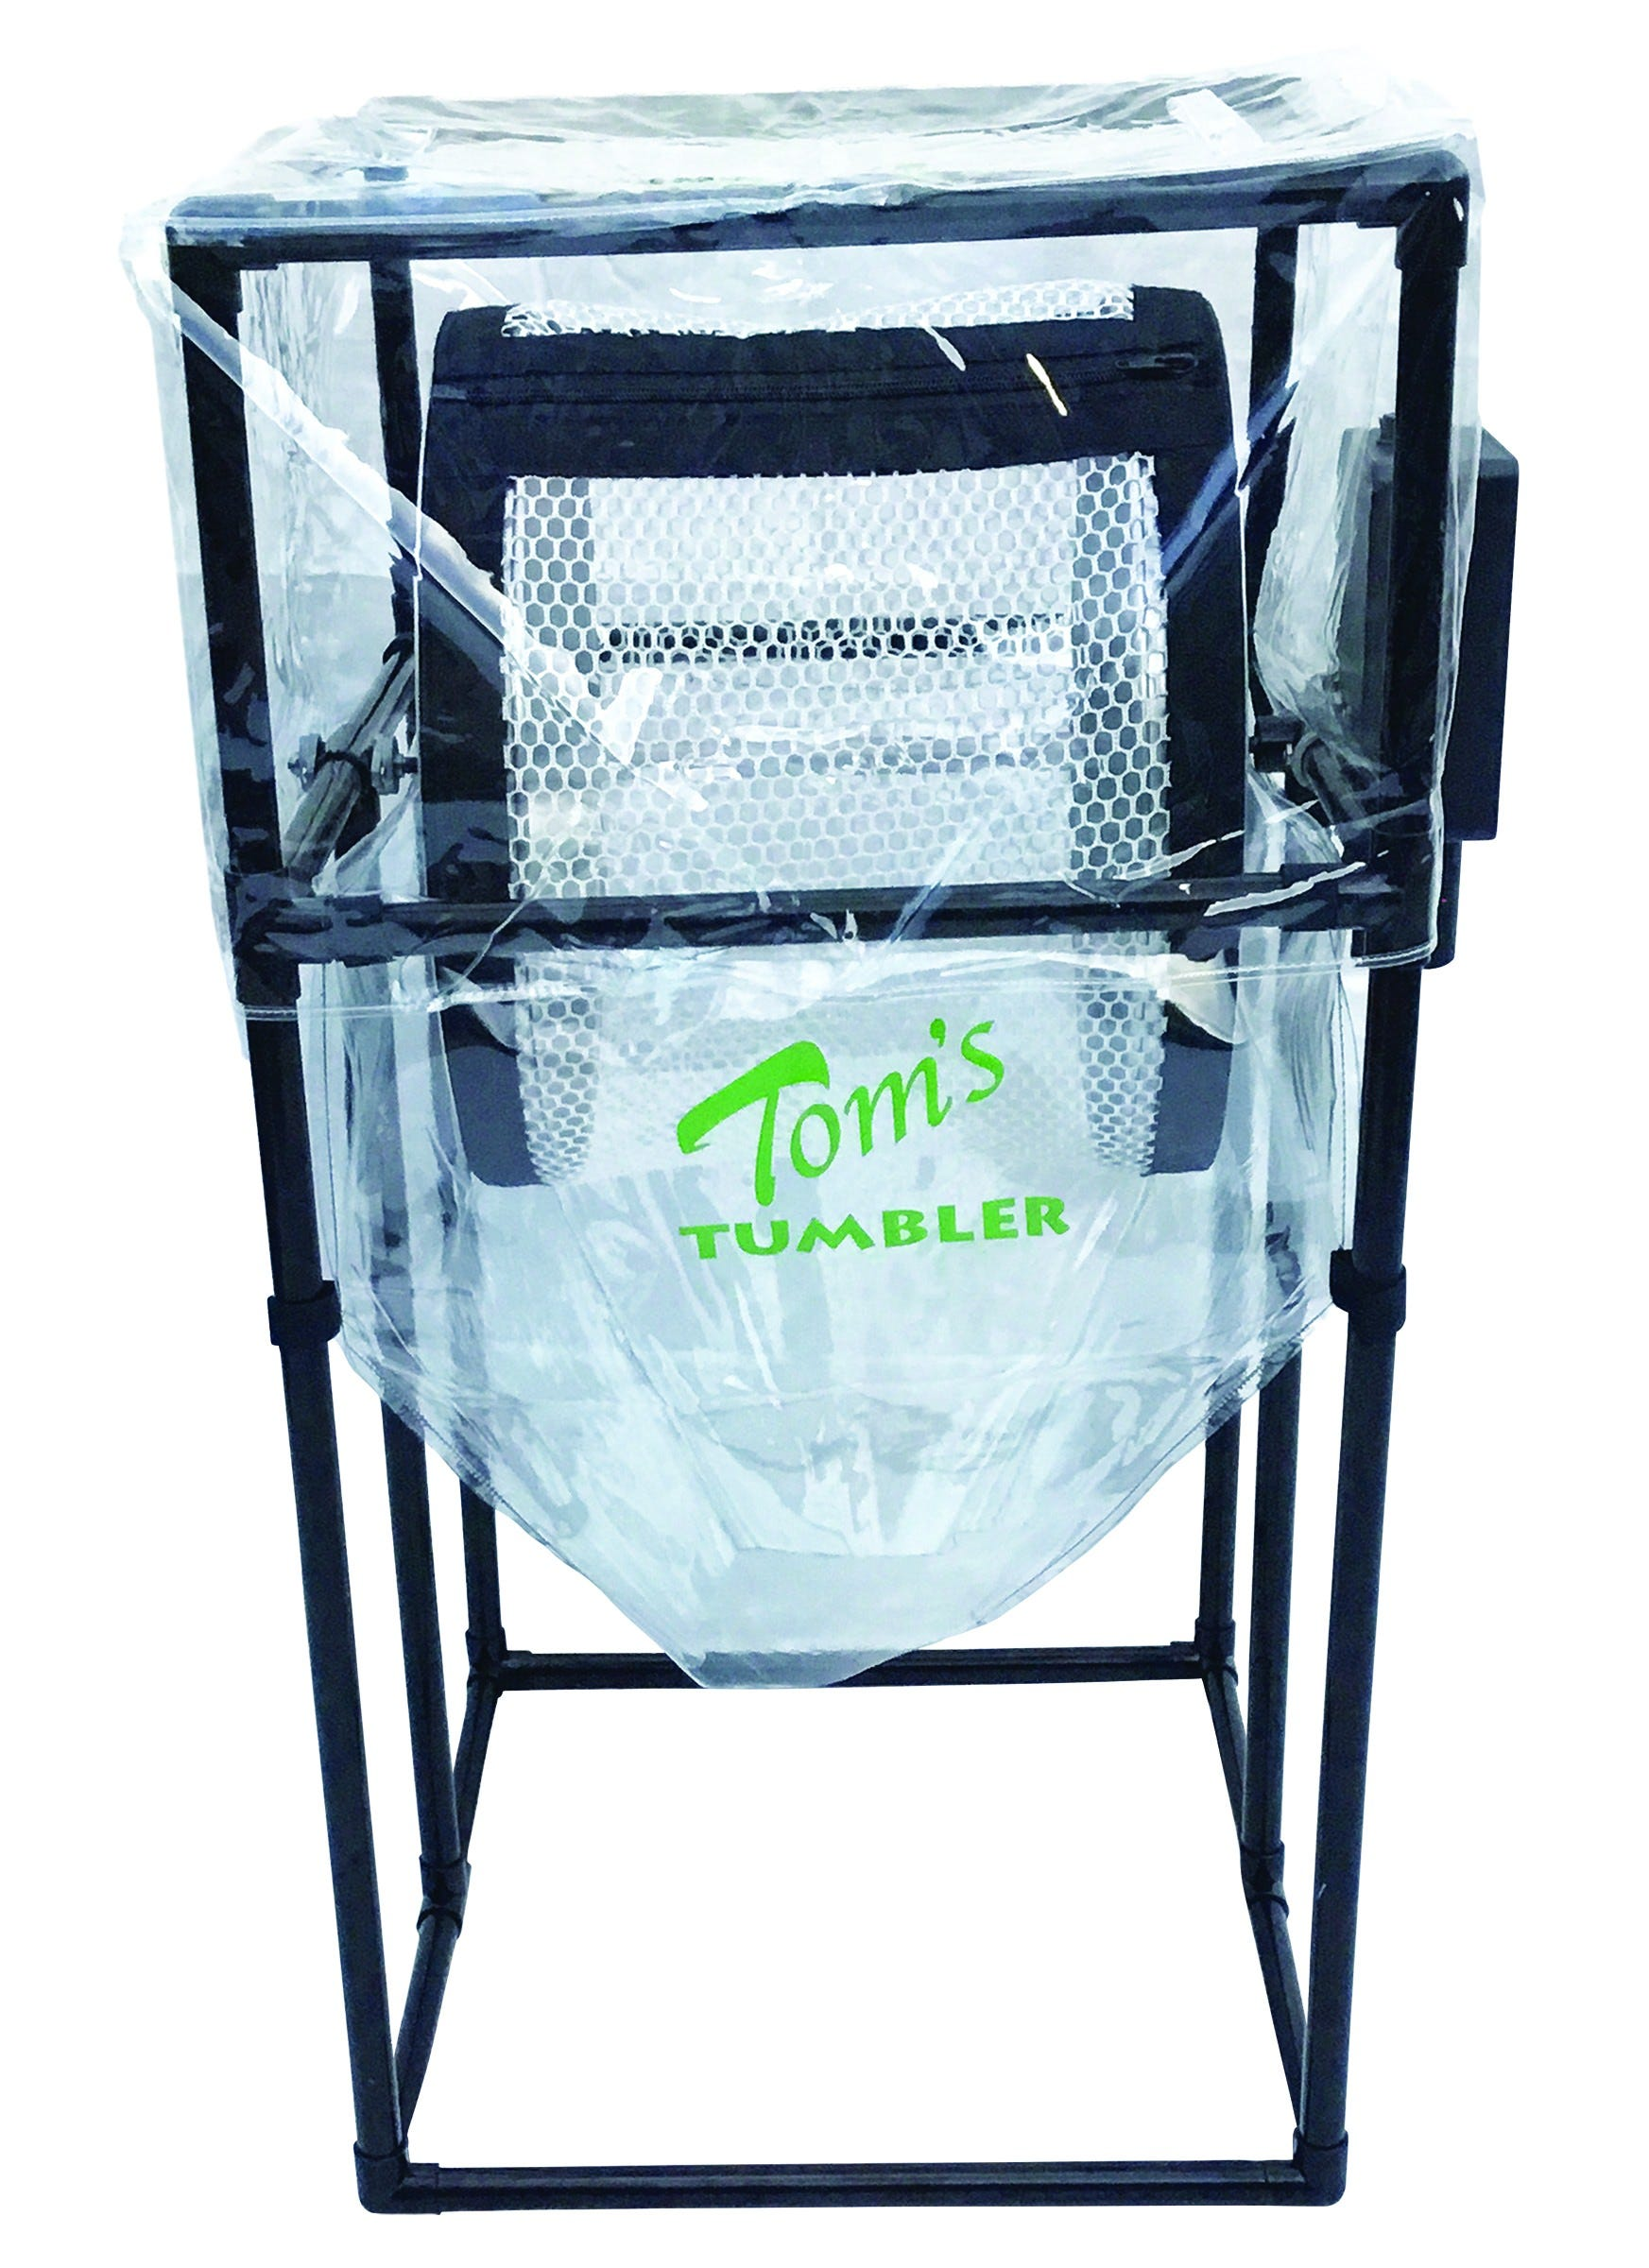 Tom's Tumbler TTT 1900 Trimmer *DISCONTINUED* This item has been discontinued, Please try our selection of Trimmers for an alternative. Tom's Tumbler TTT 1900 Trimmer The TTT 1900 System includes a clear funnel flow bag and a clear removable dust cover so you can watch the trimming process. It includes two nets which go right on the tumbler after you trim and sort. The trimming and sorting is done by using the 1/2 and 1/4 inch mesh nets. Put your trim in the net with some dry ice and easily catch trim in your bag and dust cover. The TTT 1900 is sleek and efficient for trimming volumes of 1-2 pounds per 7-minute cycle. That equates to up to 12 pounds per hour. The frame is made of durable furniture-grade PVC with an aluminum axle. It includes a heavy-duty motor with speed control, metal drums, 1/2 inch and 3/8 inch mesh nets and a new quick release catch bag. Nets are machine washable. You may need to lubricate the zippers over time. Tom's Tumbler TTT 1900 Trimmer comes with a one year warranty. See how a Tom's Tumbler works: